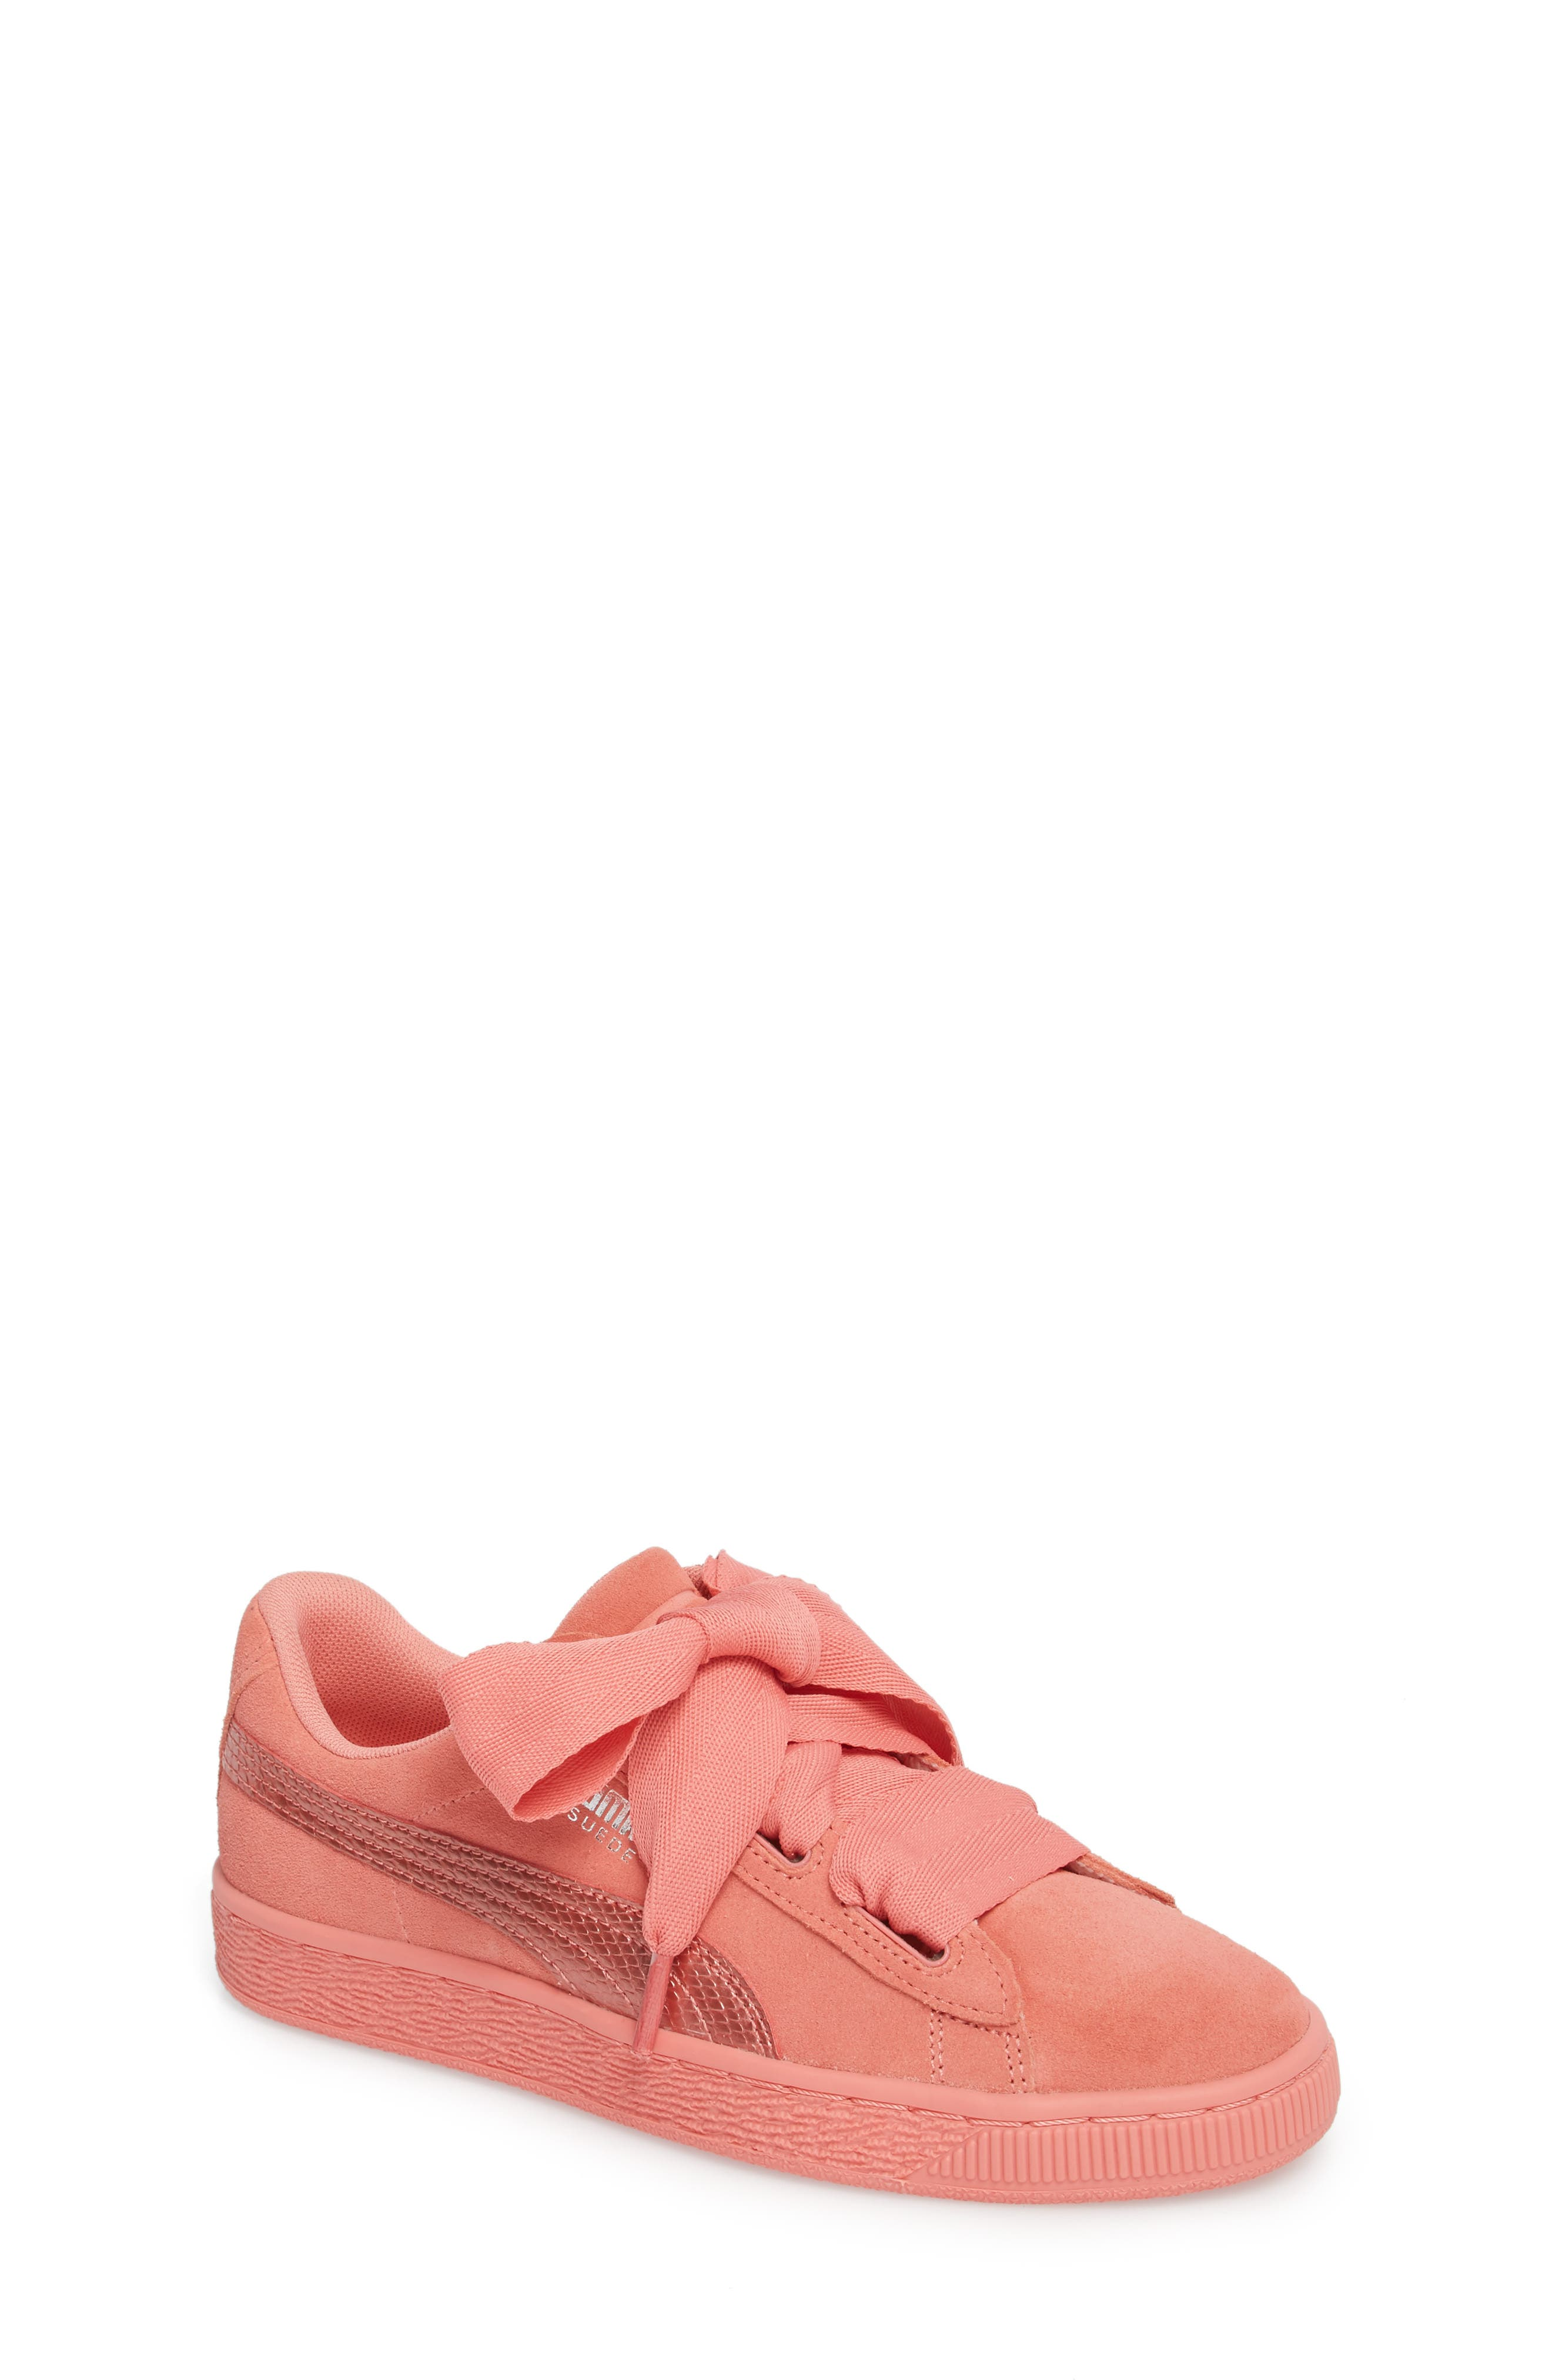 Suede Heart Sneaker,                             Main thumbnail 1, color,                             Shell Pink/ Shell Pink